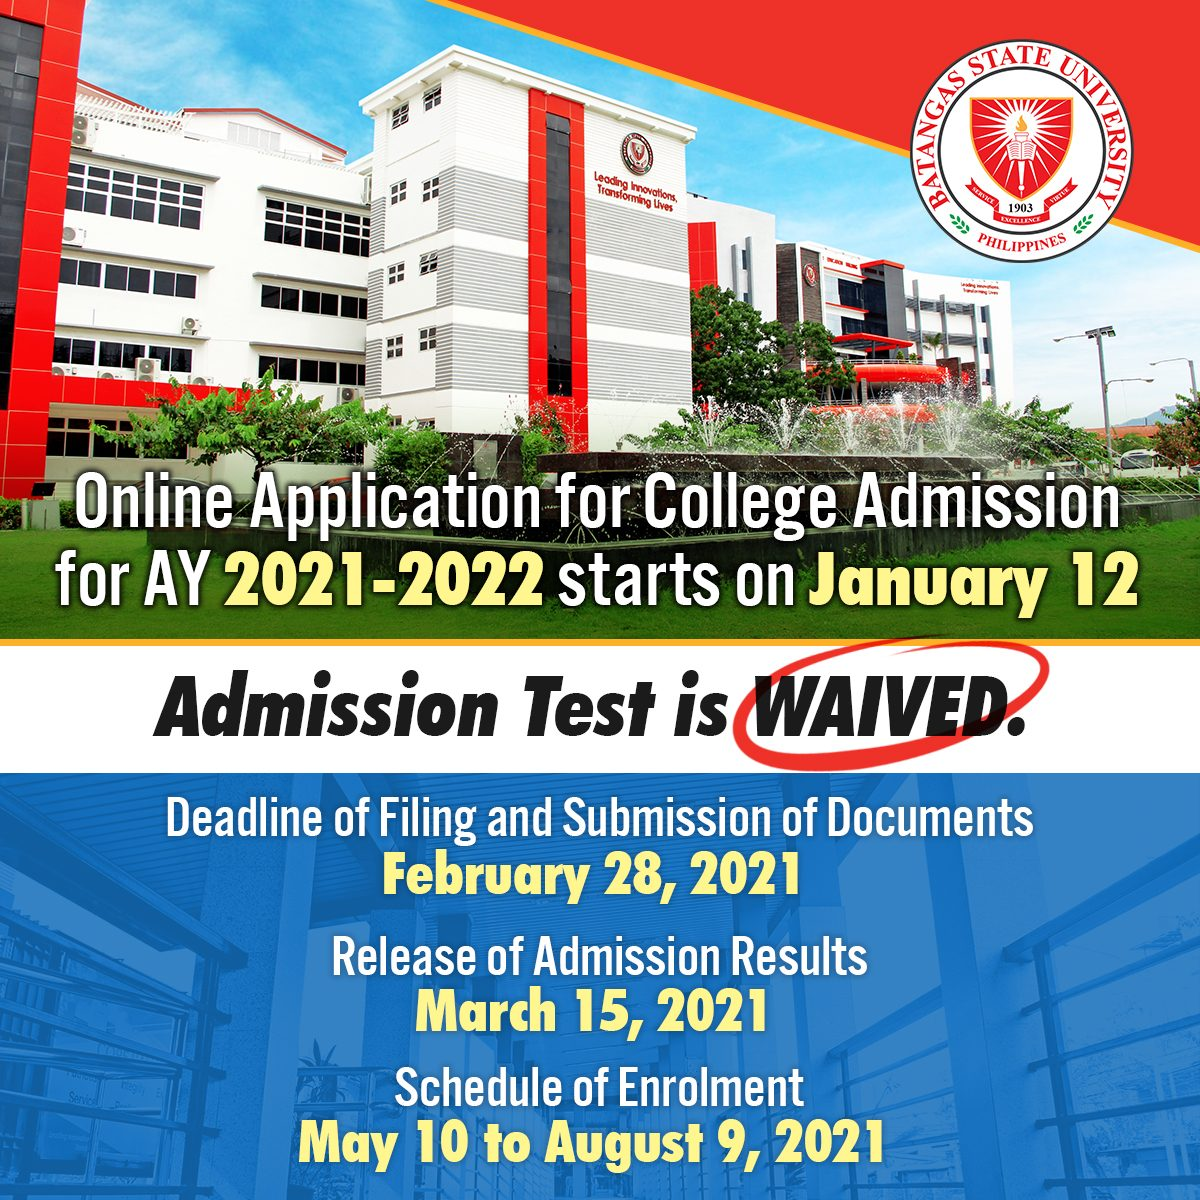 Bsu Academic Calendar 2022.The Batstateu College Admission Test For Ay 2021 2022 Is Waived Batangas State University